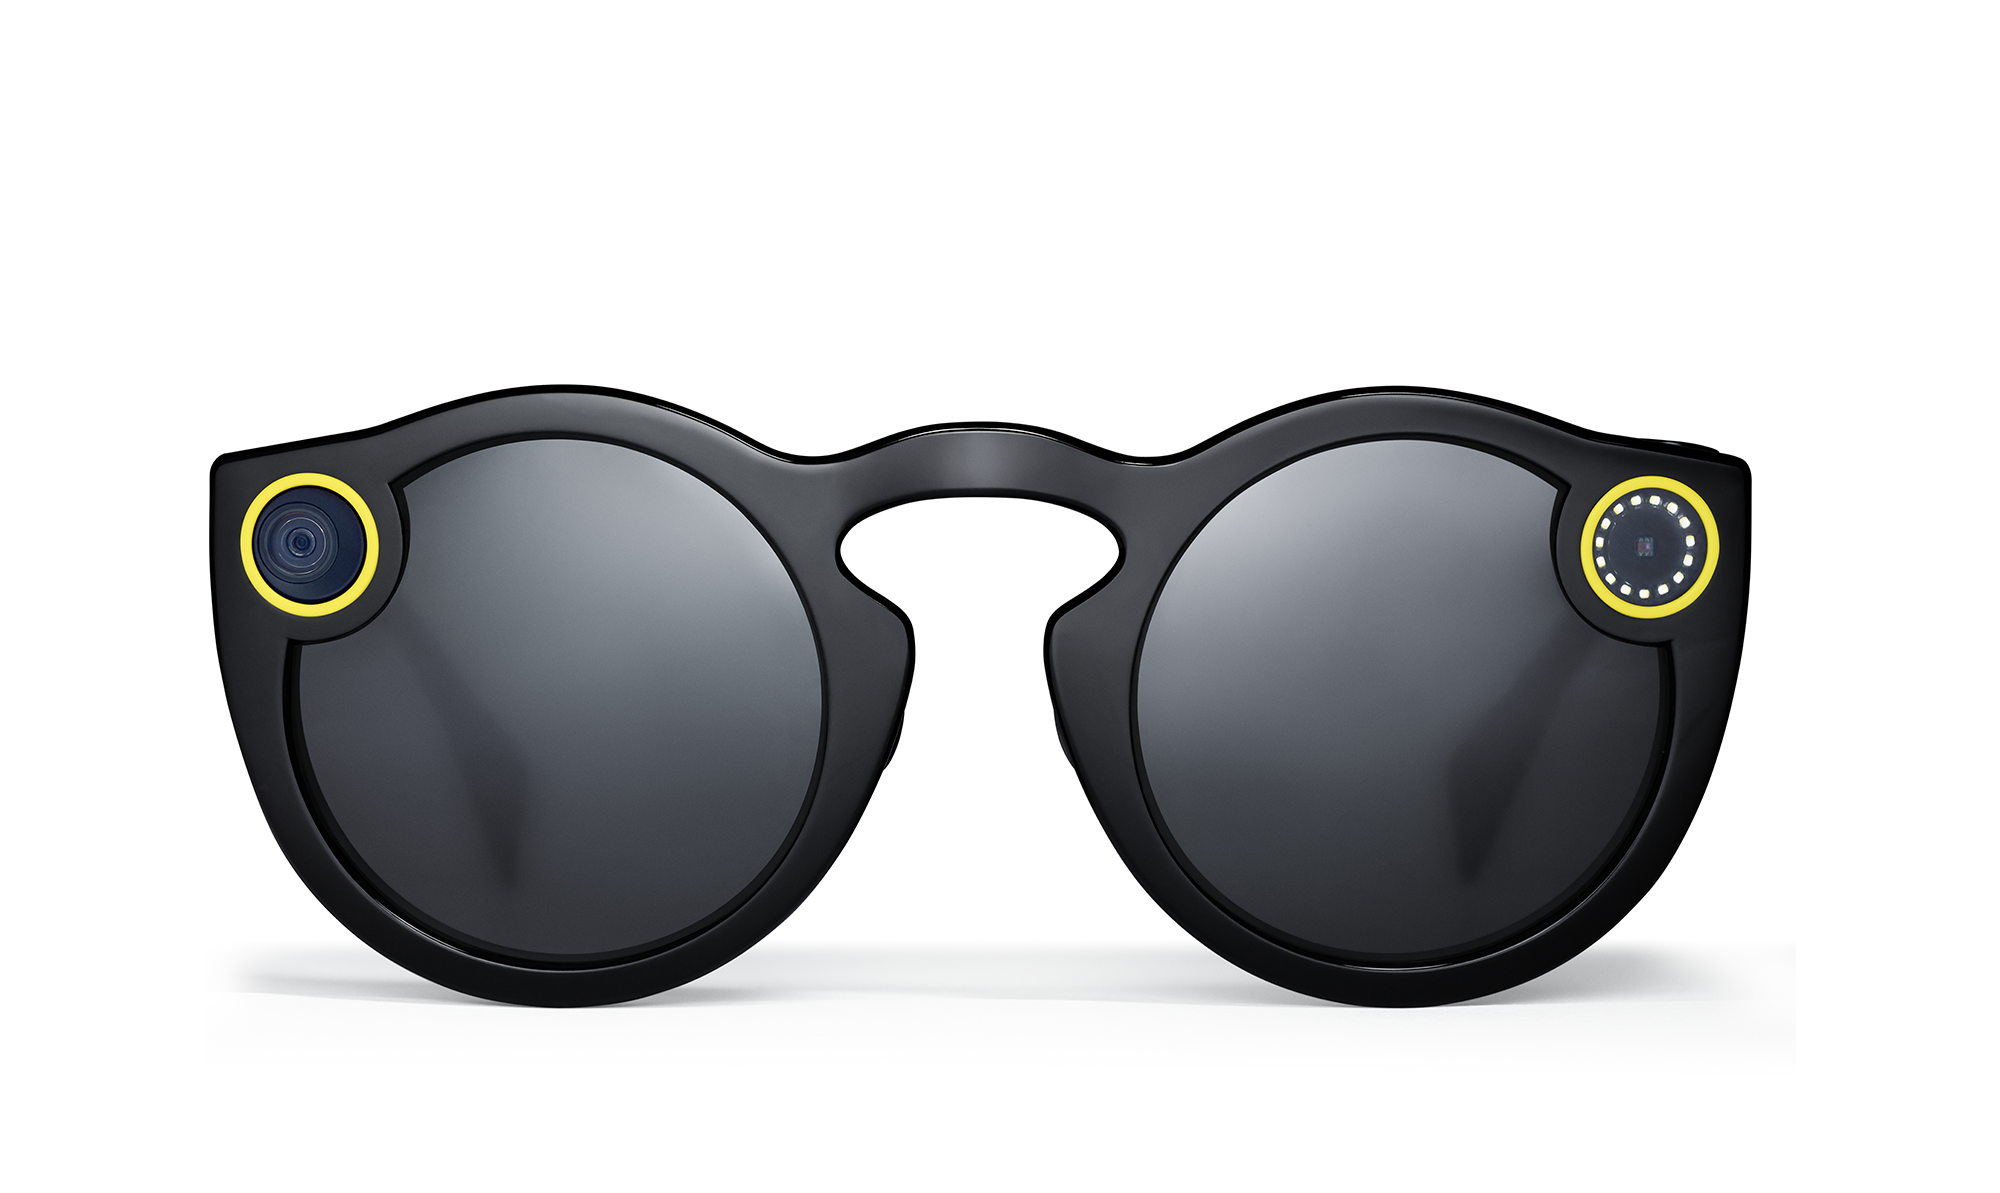 Snapchat Spectacles Now Available To Buy Outside Of The U.S. 1 Black Spectacles